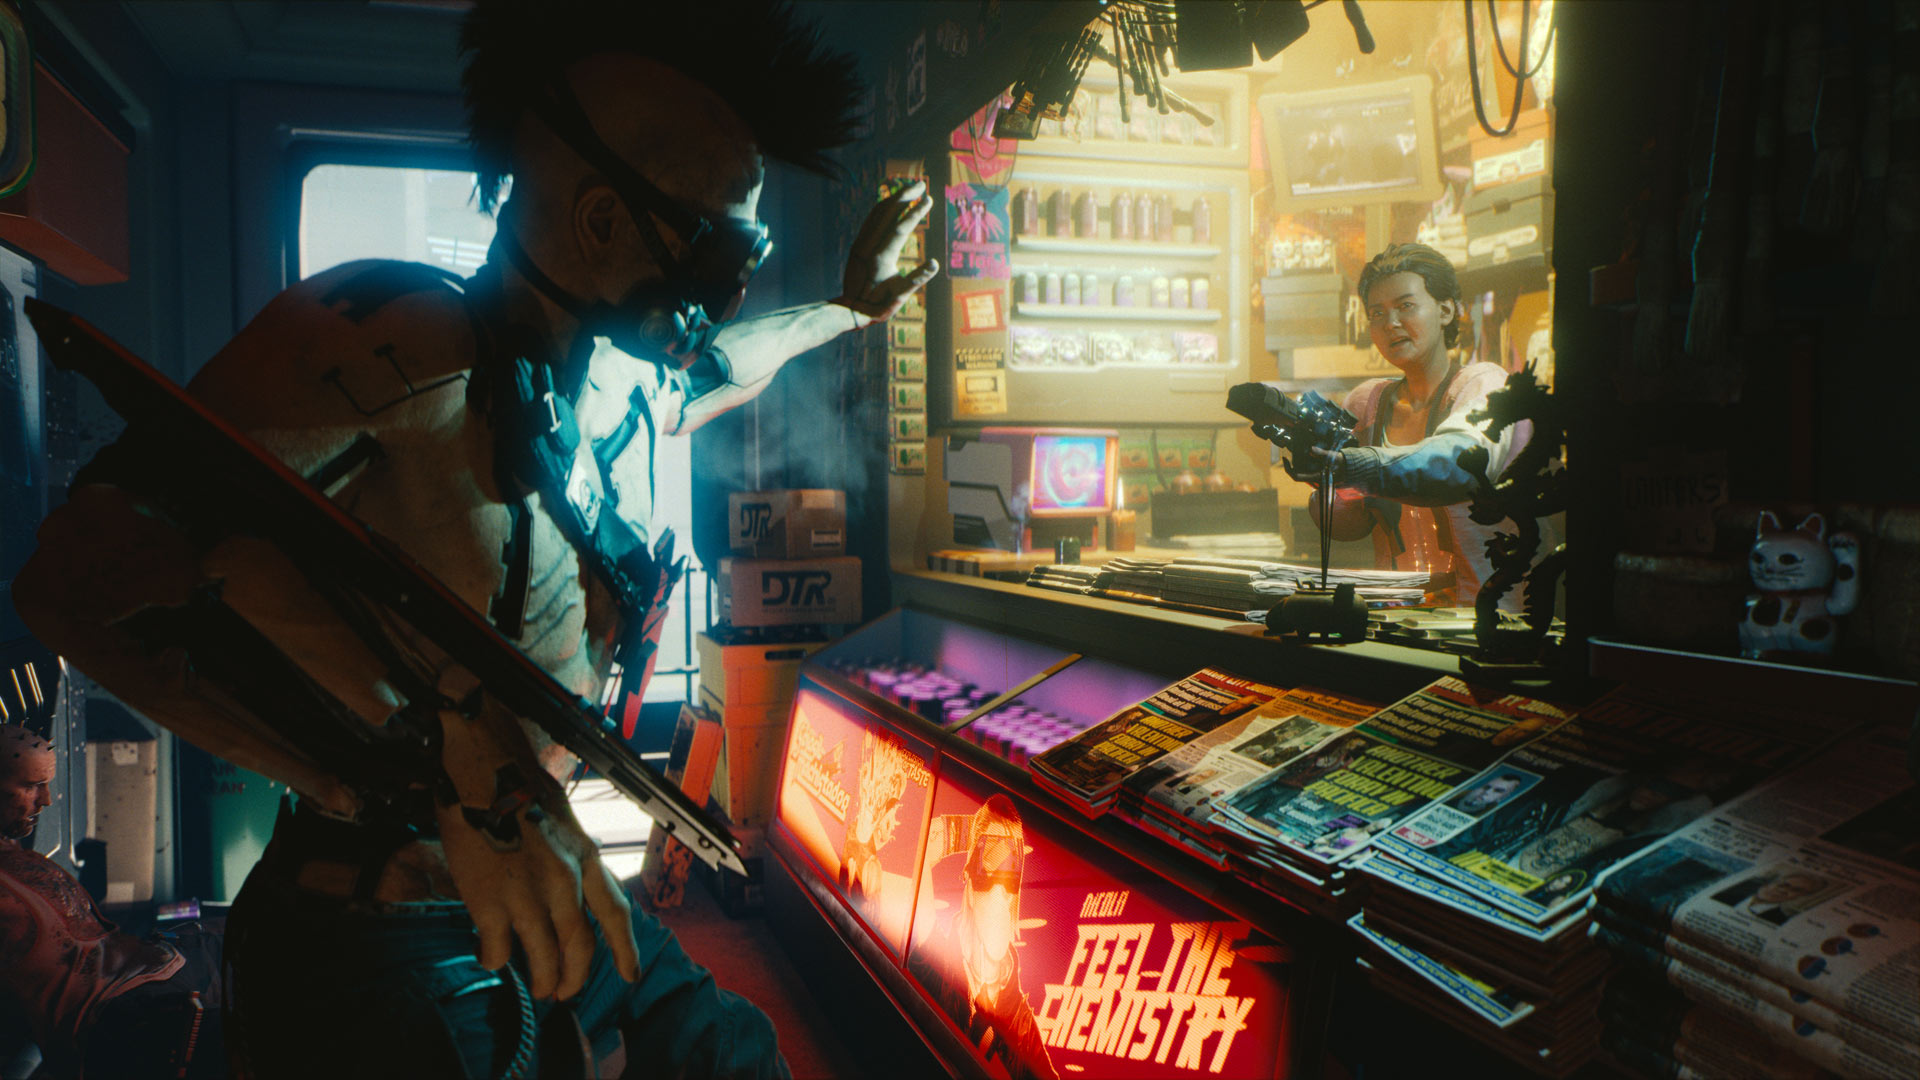 Cyberpunk's original creator hopes fans will be patient with Cyberpunk 2077  developers | GamesRadar+